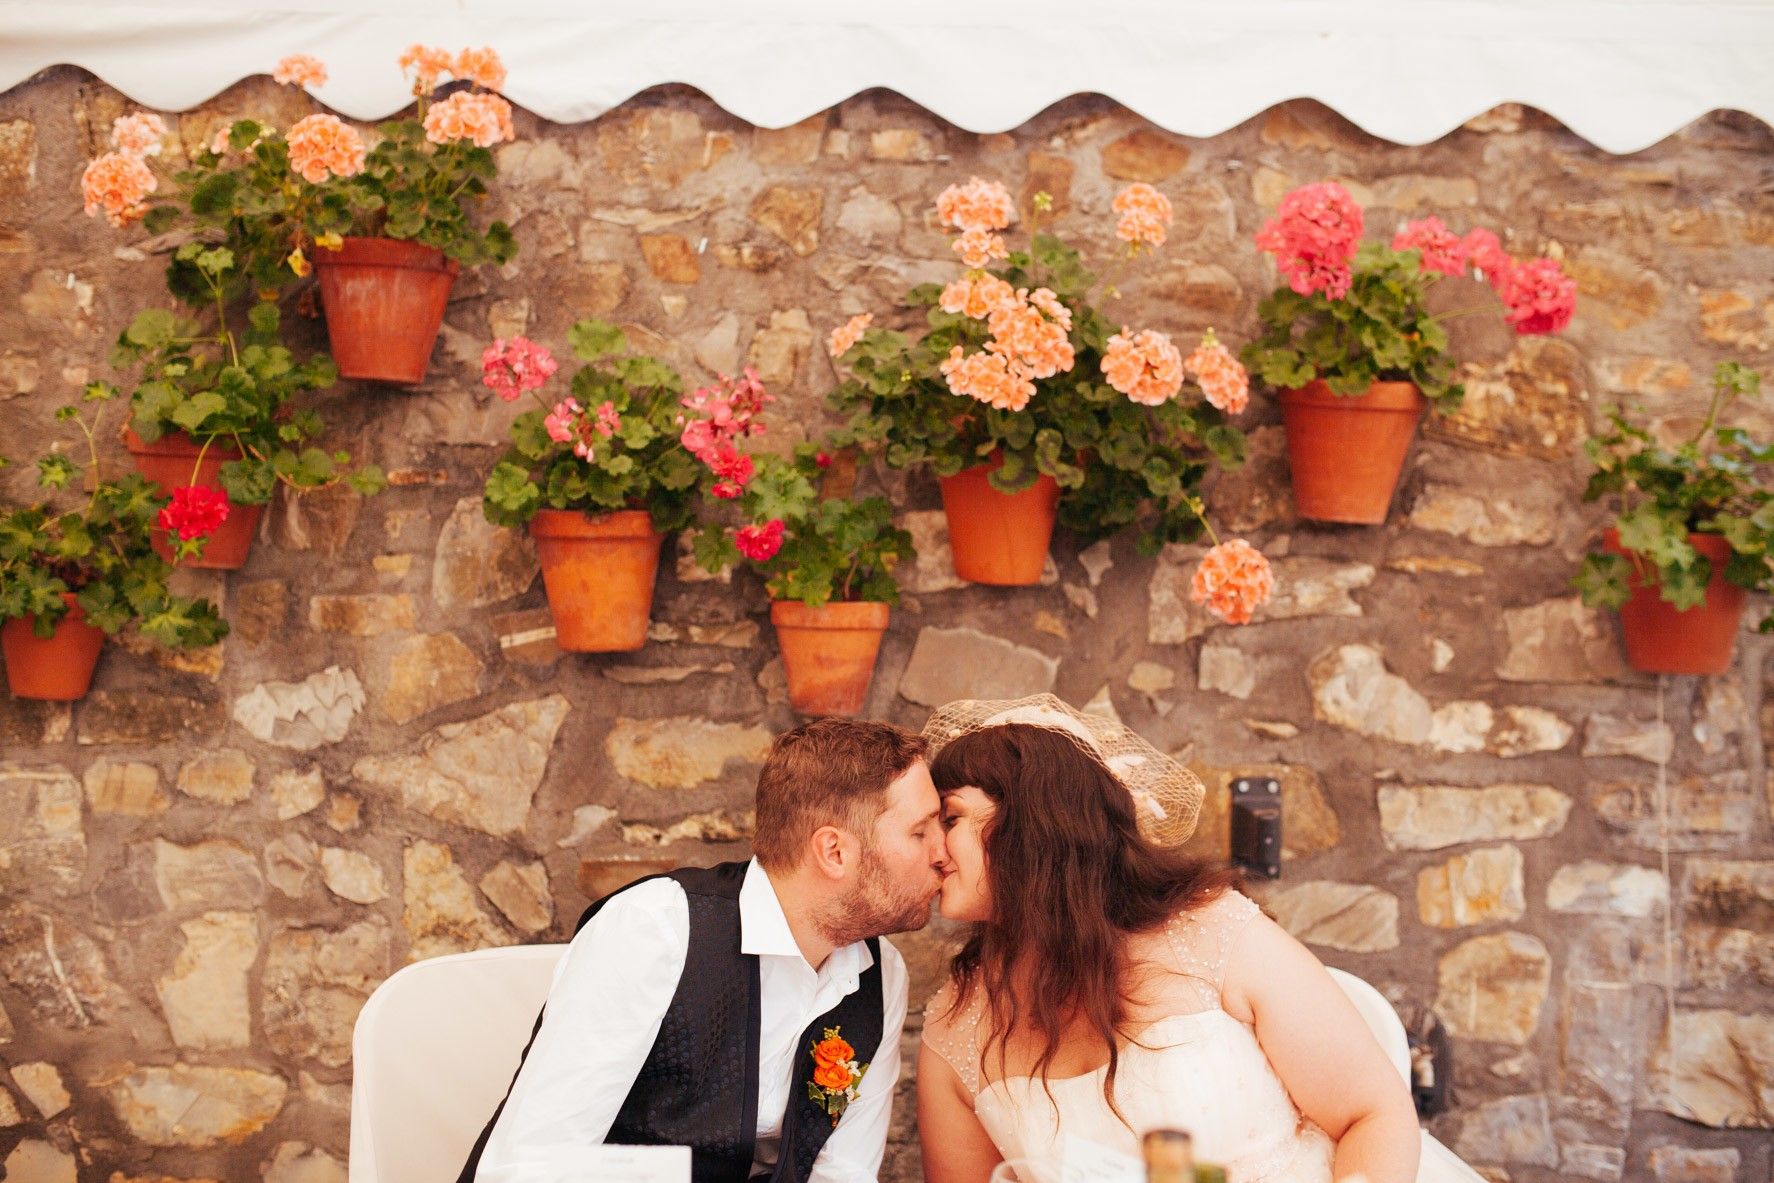 Lovely wedding in Barrika, Vizcaya. Wedding photographer, Kunst Photo & Art